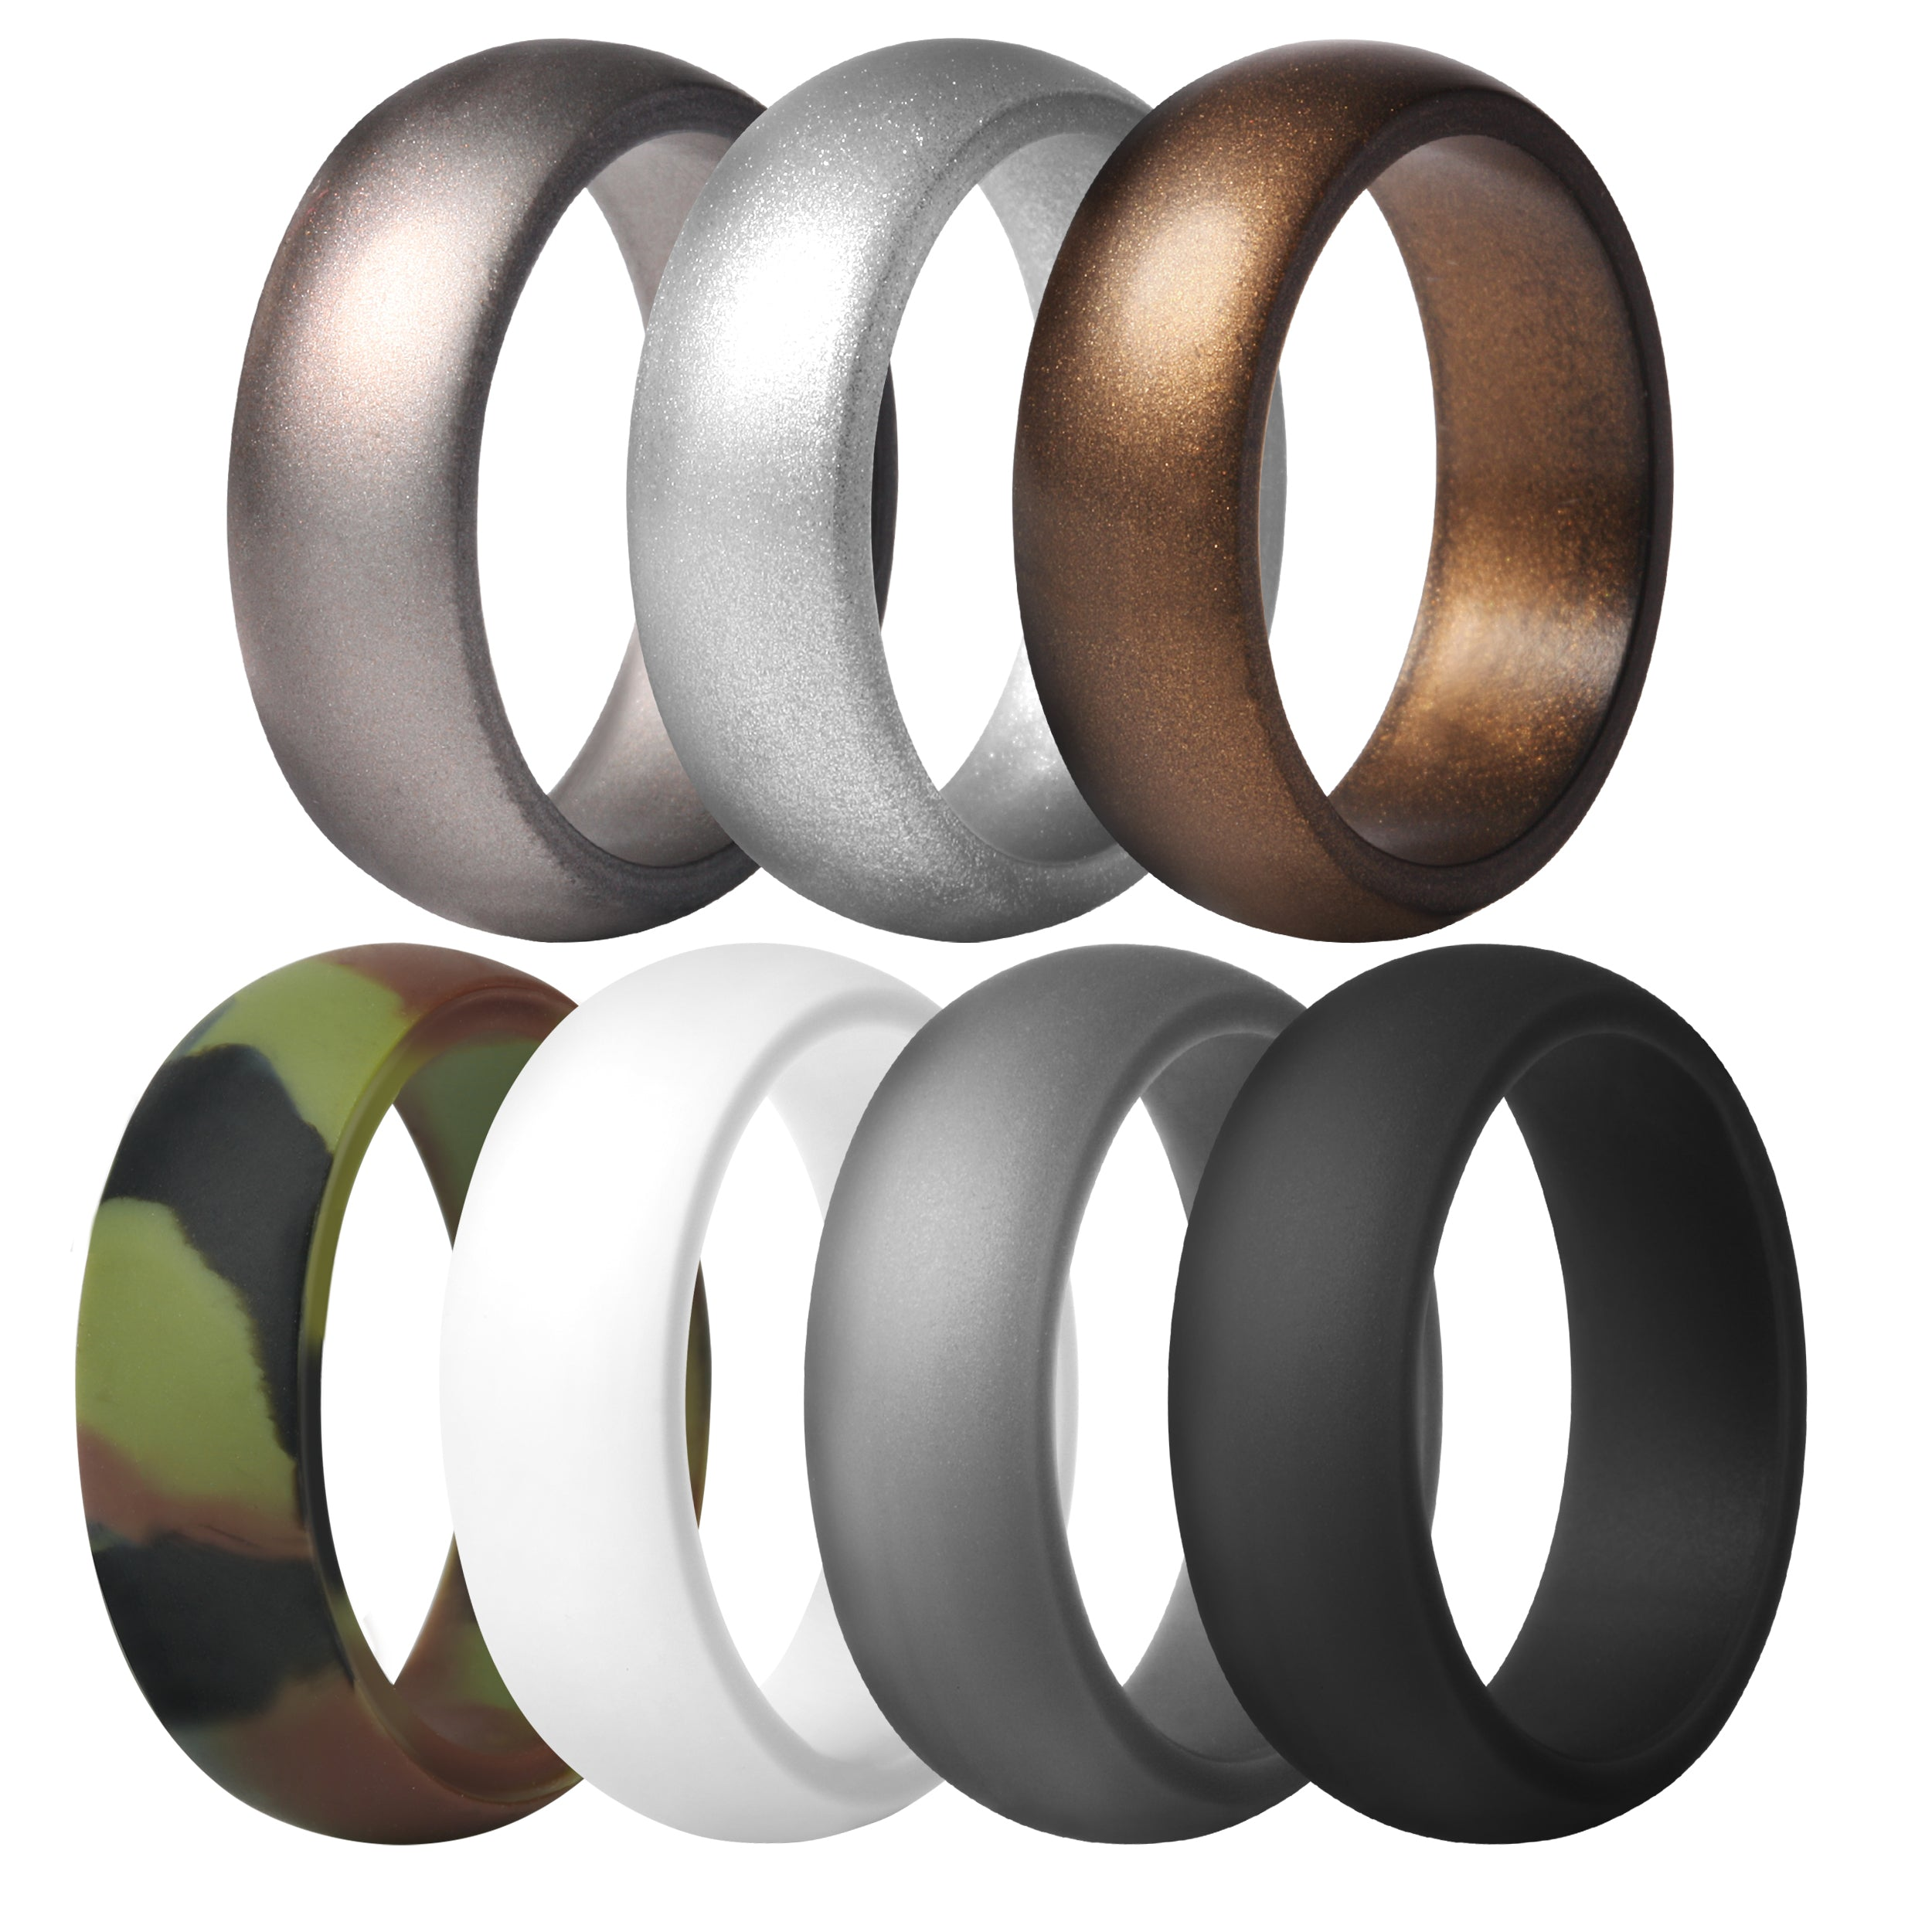 Men's Classic Rings 7 Pack - Deadlift